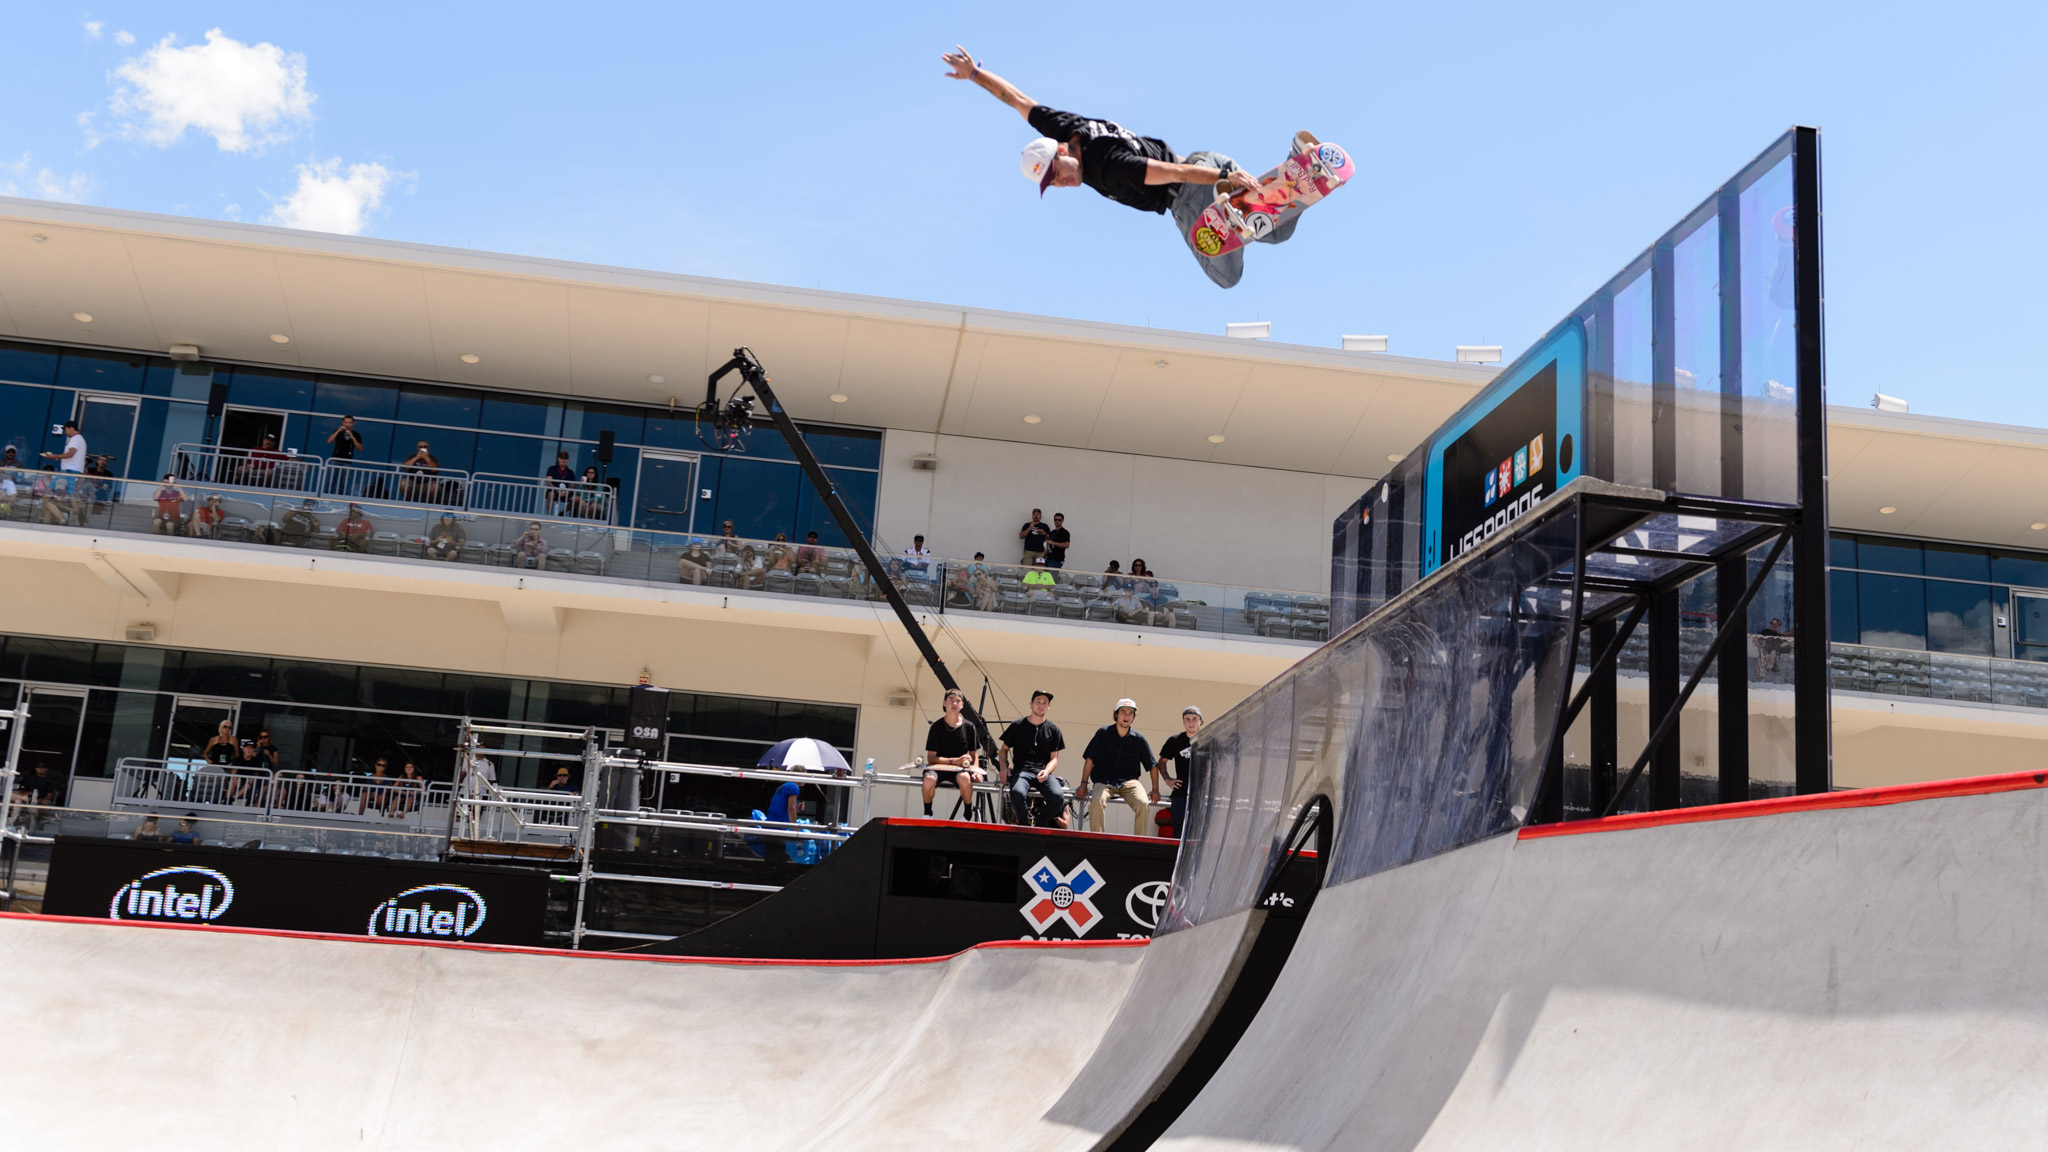 Men's Skateboard Park: Pedro Barros